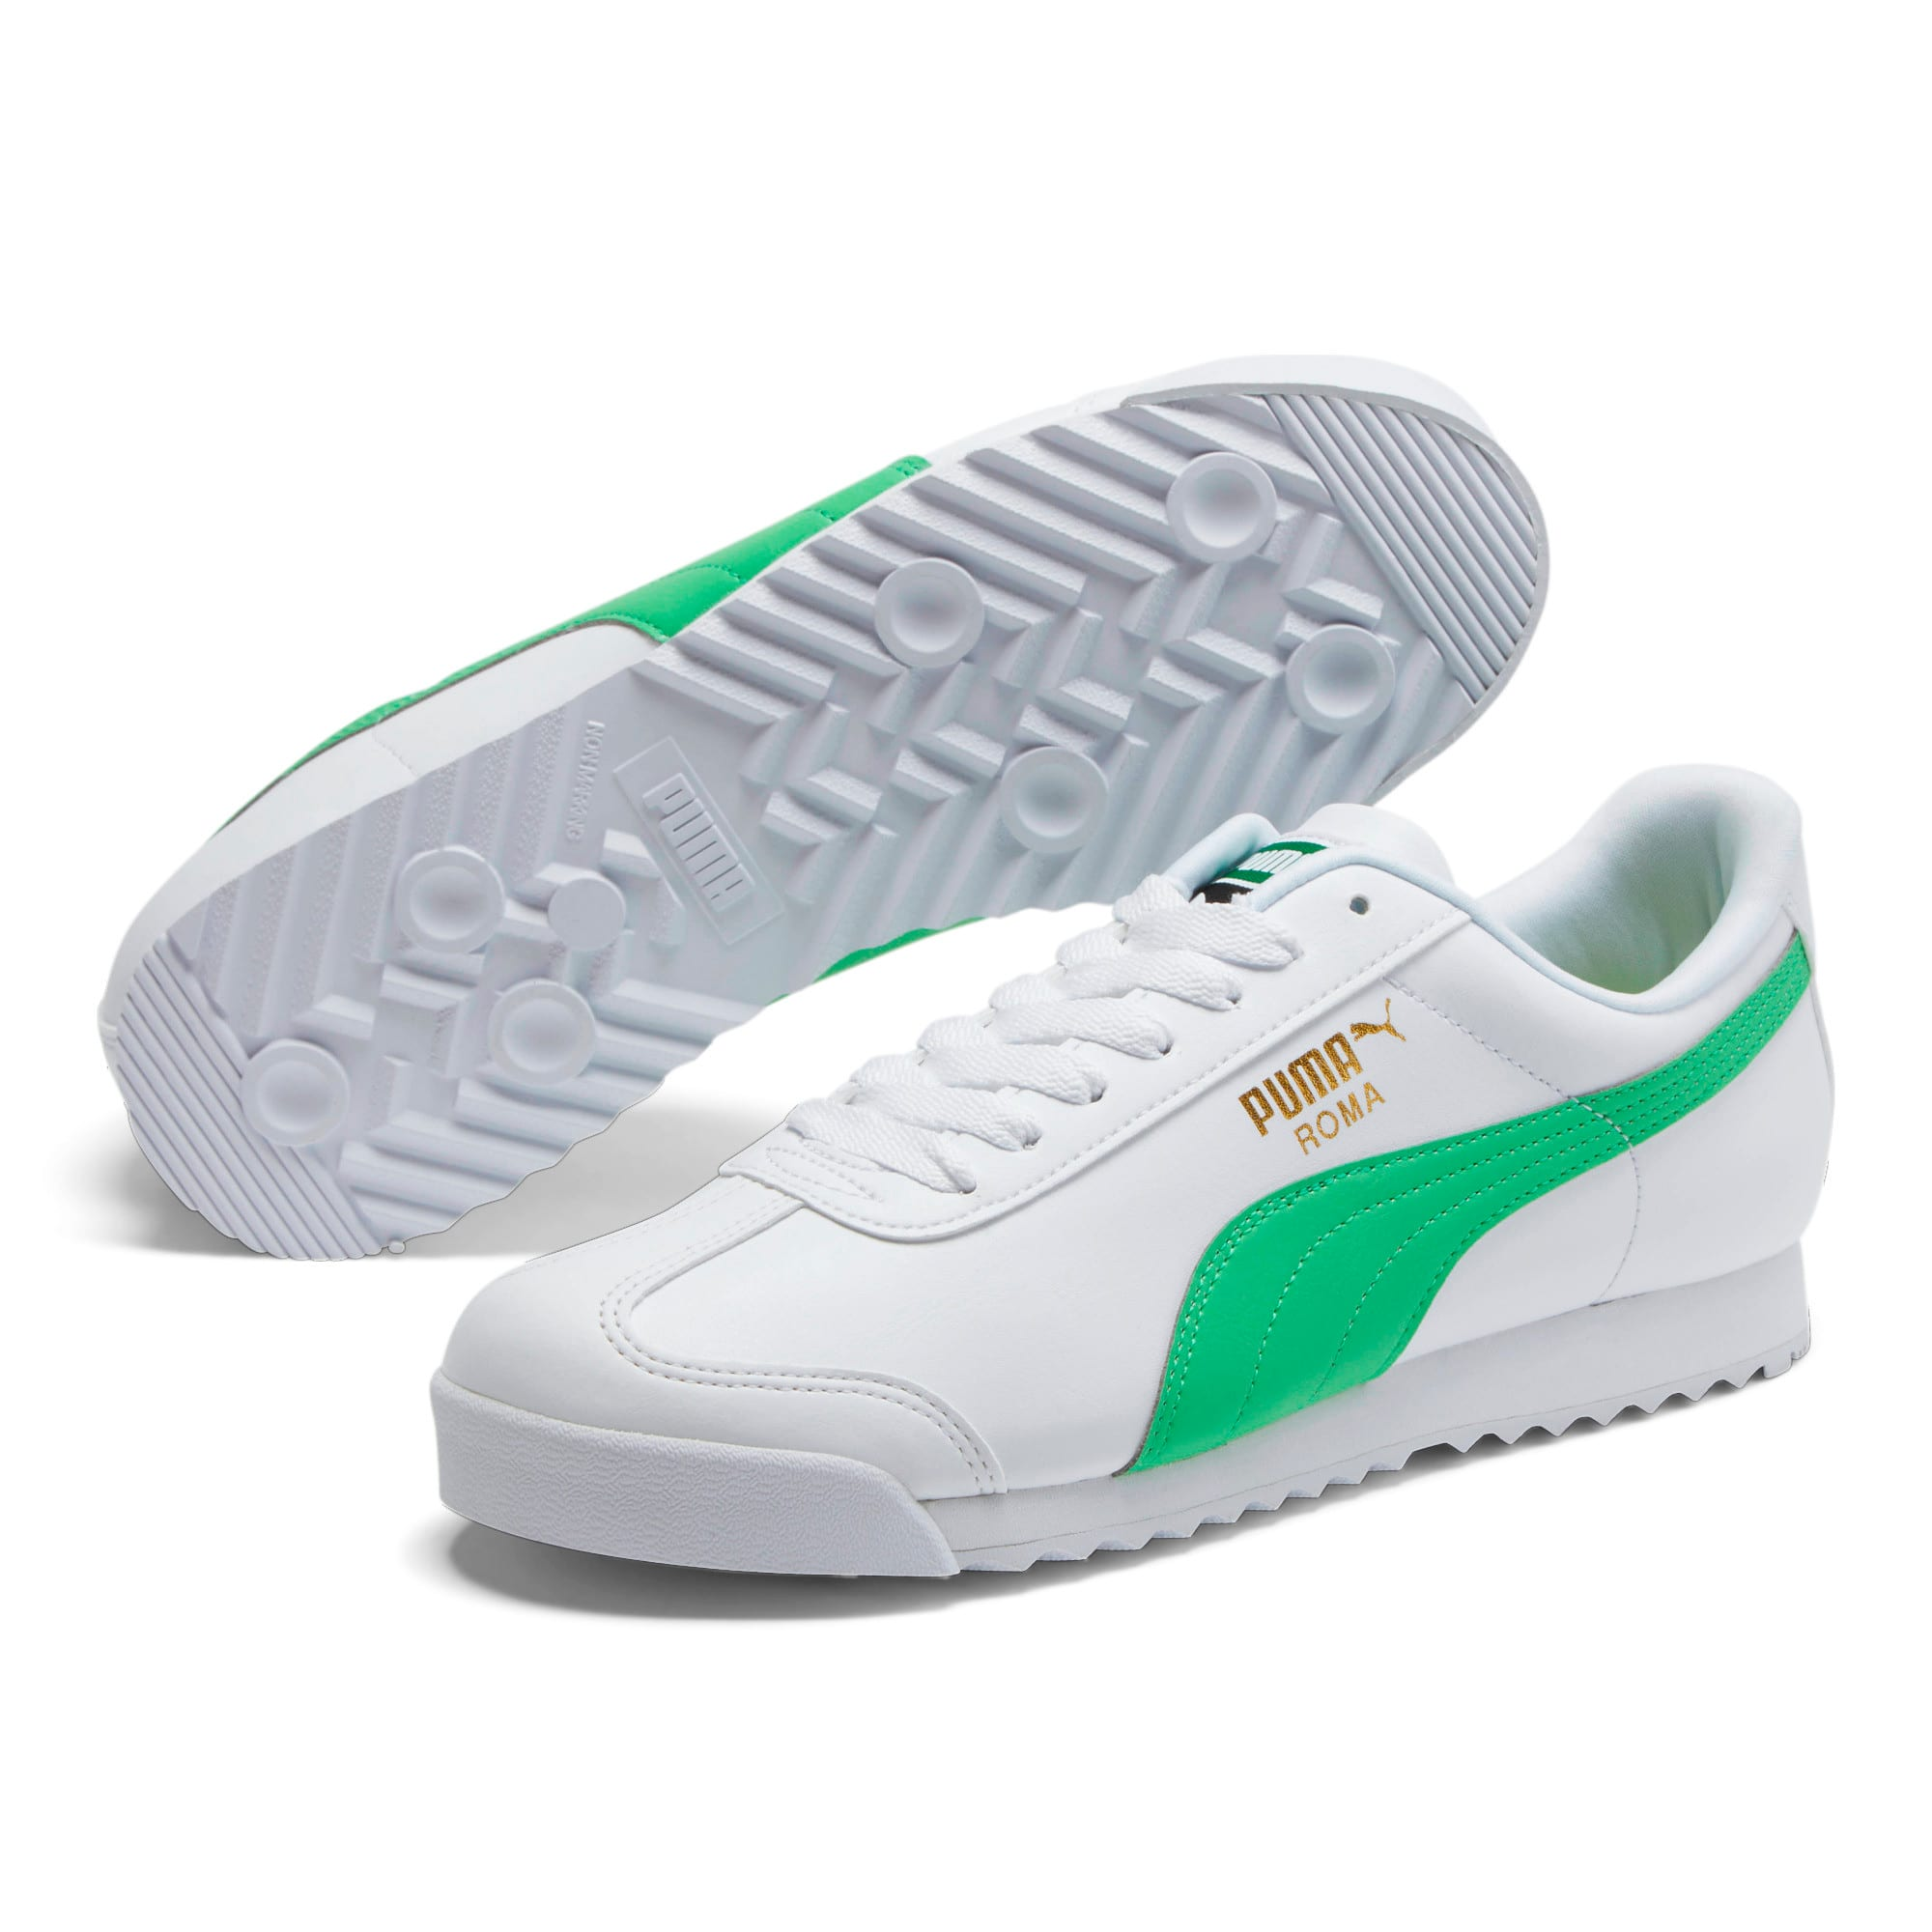 Miniatura 2 de Zapatos deportivos Roma Basic +, Puma White-Irish Green, mediano